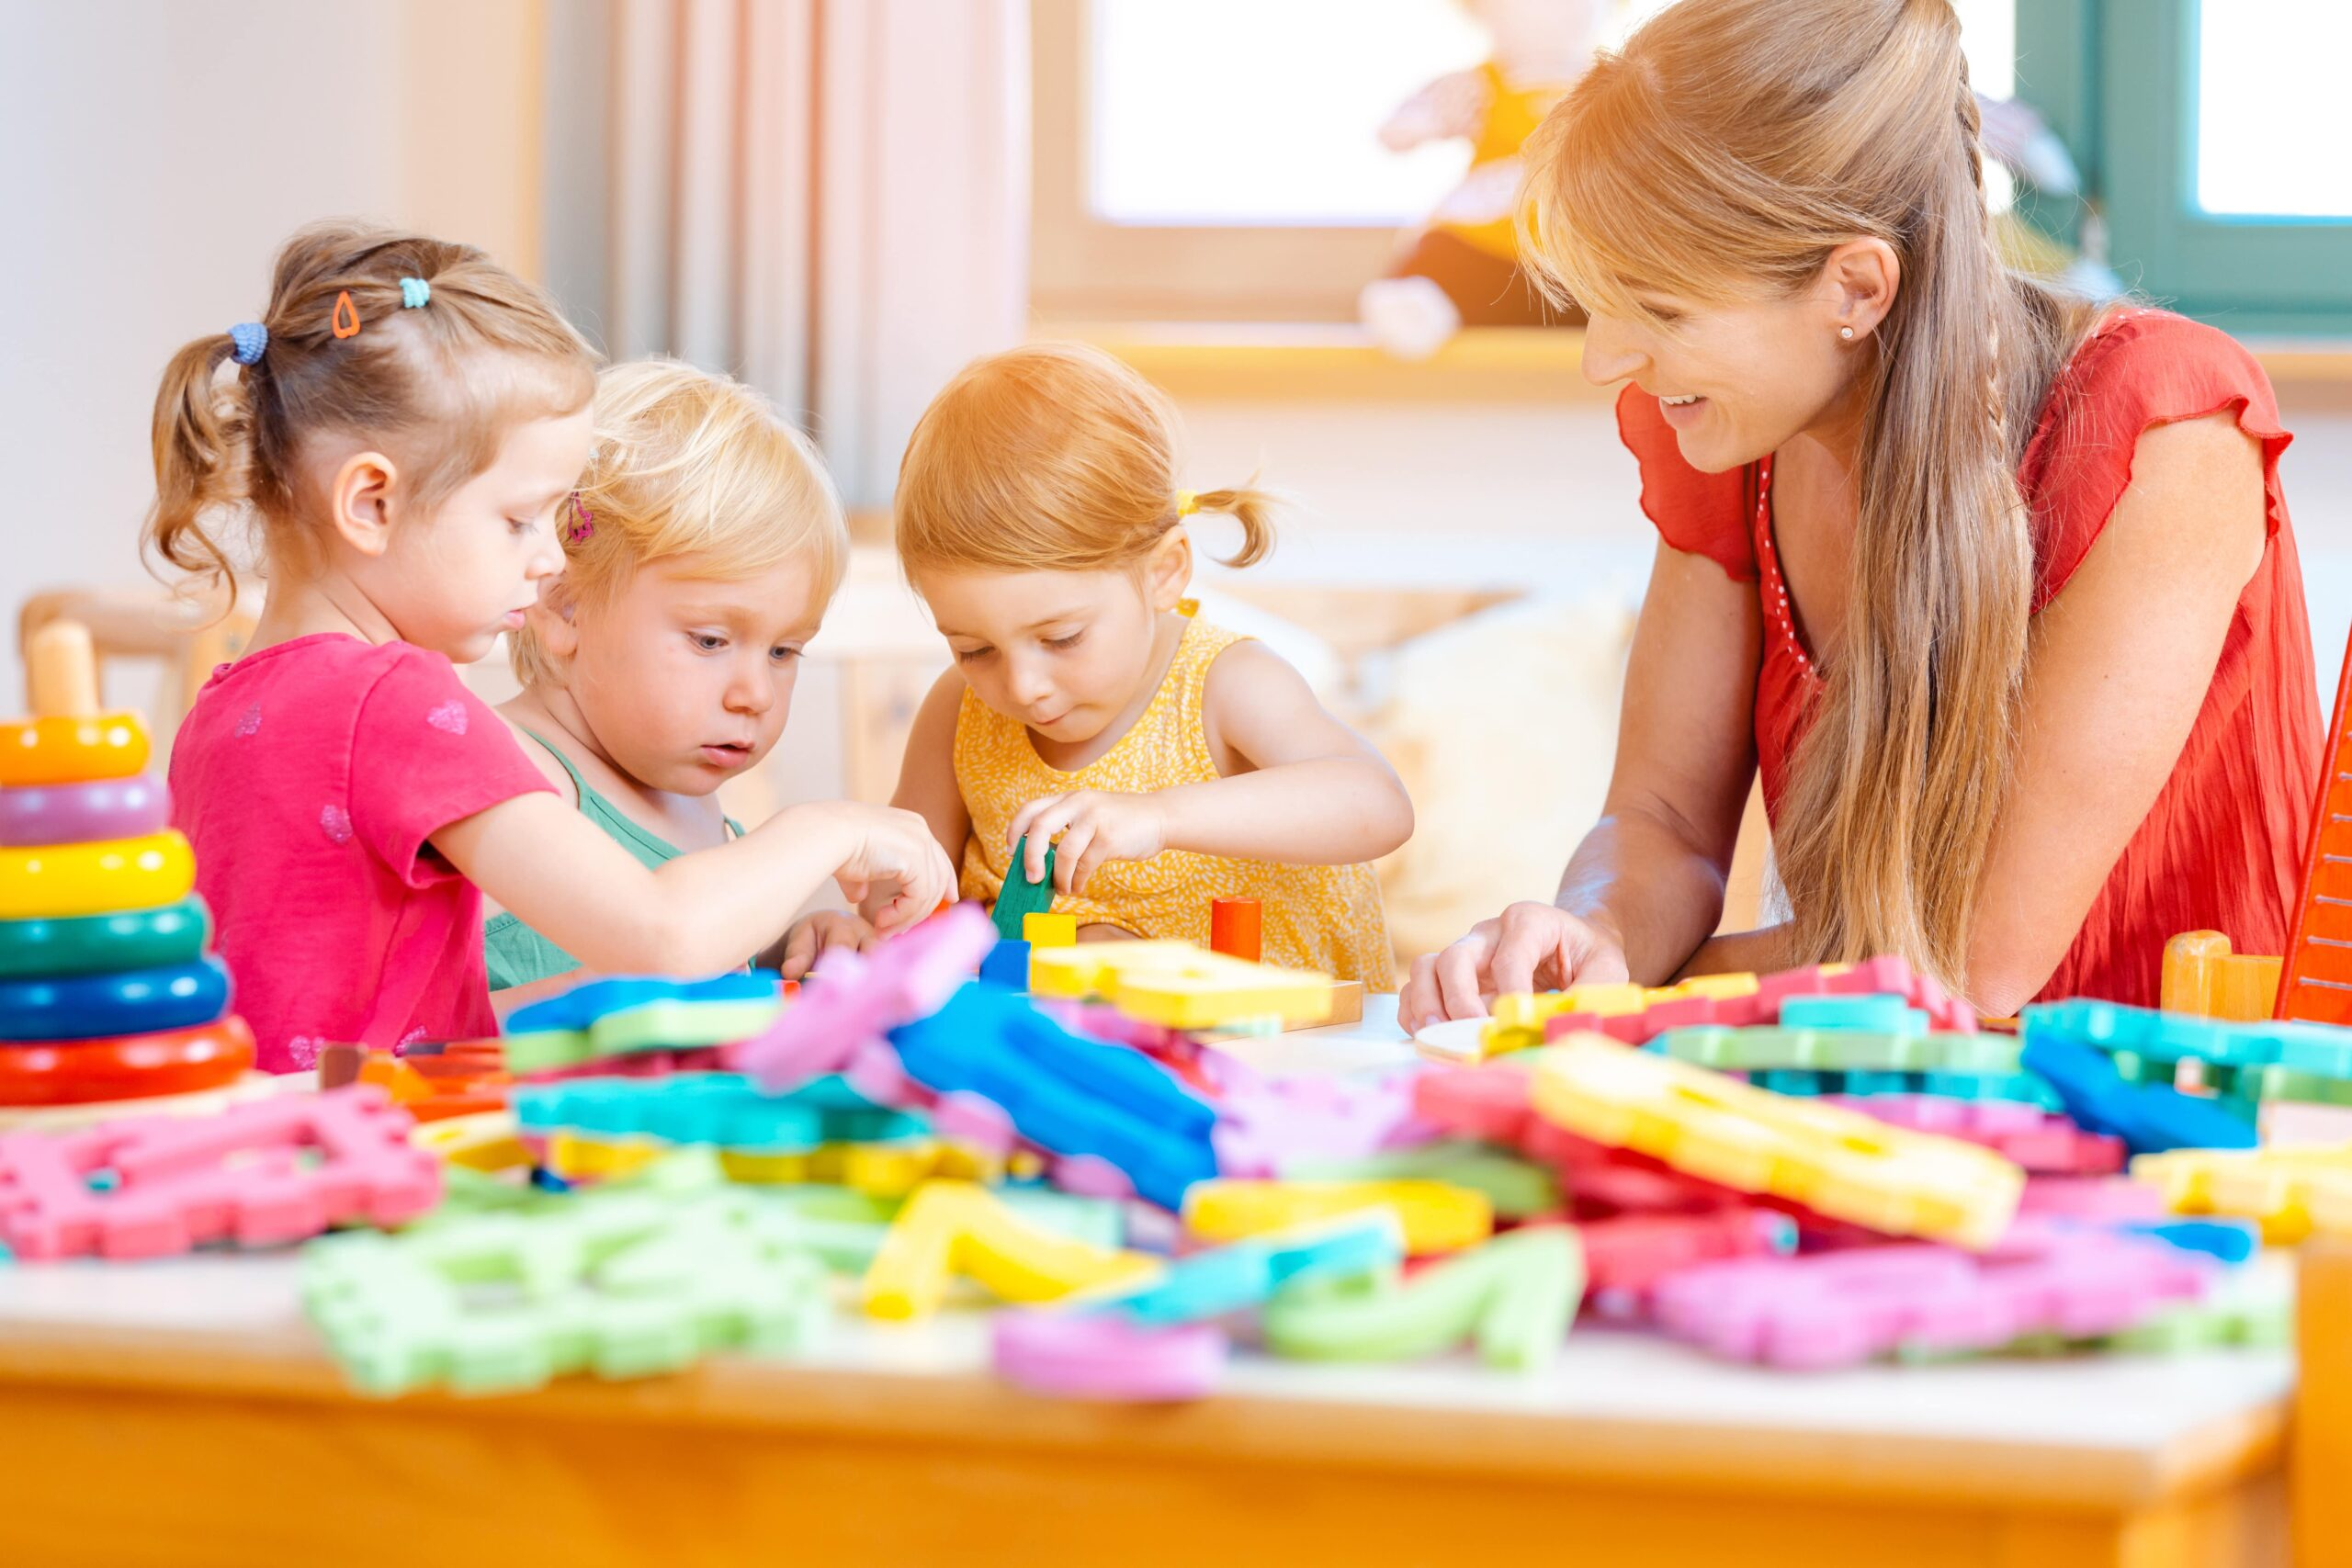 3 kids and 1 woman playing early childhood development